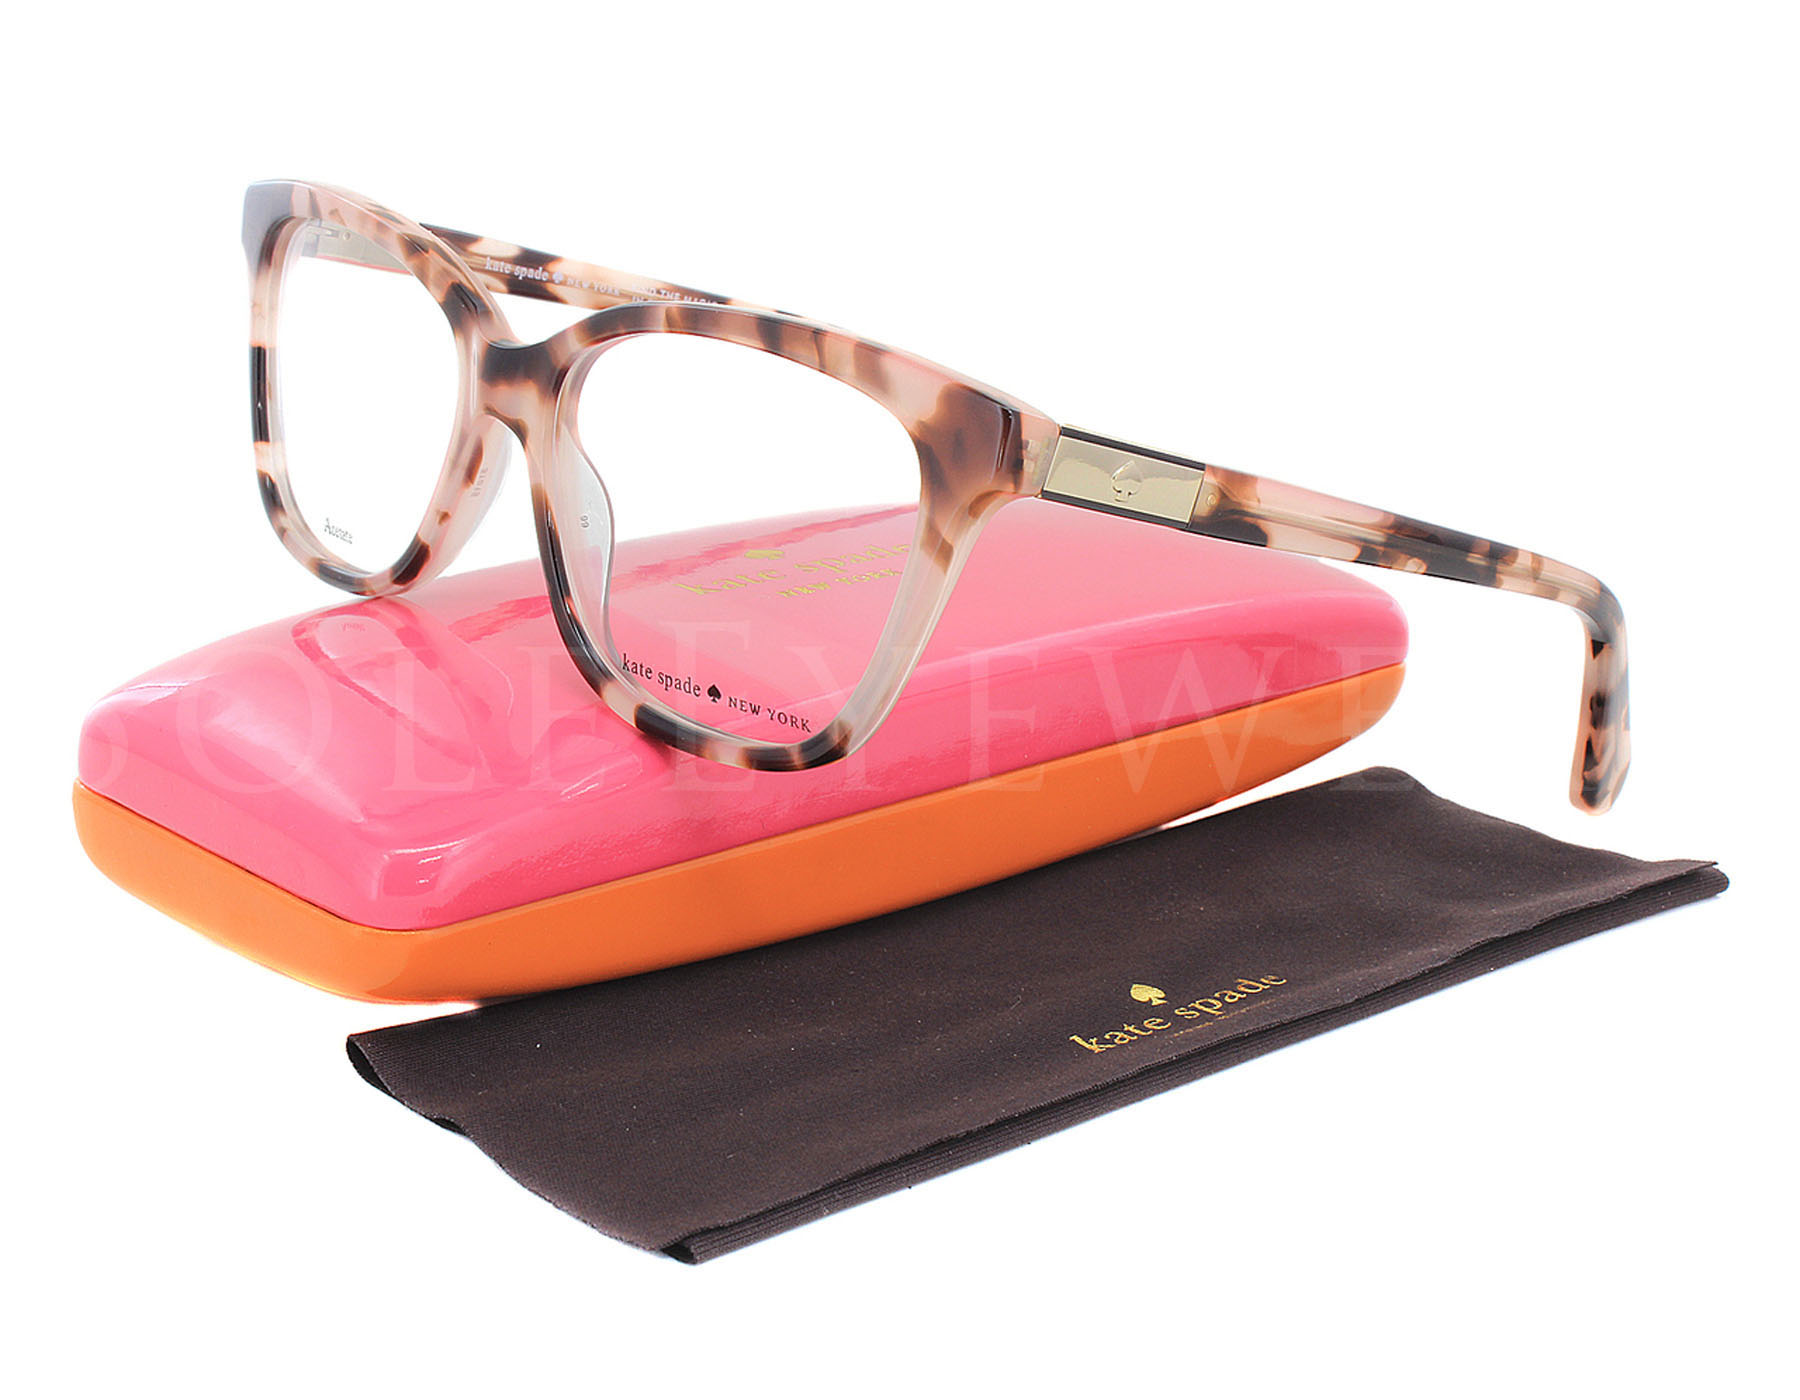 Details About New Kate Spade Jorja 0ht800 Havana Pink Optical Eyeglasses Frames All Products Sold By Us Are Factory Fresh With Original Designer Cases Documentation And Packaging As Provided The Manufacturer